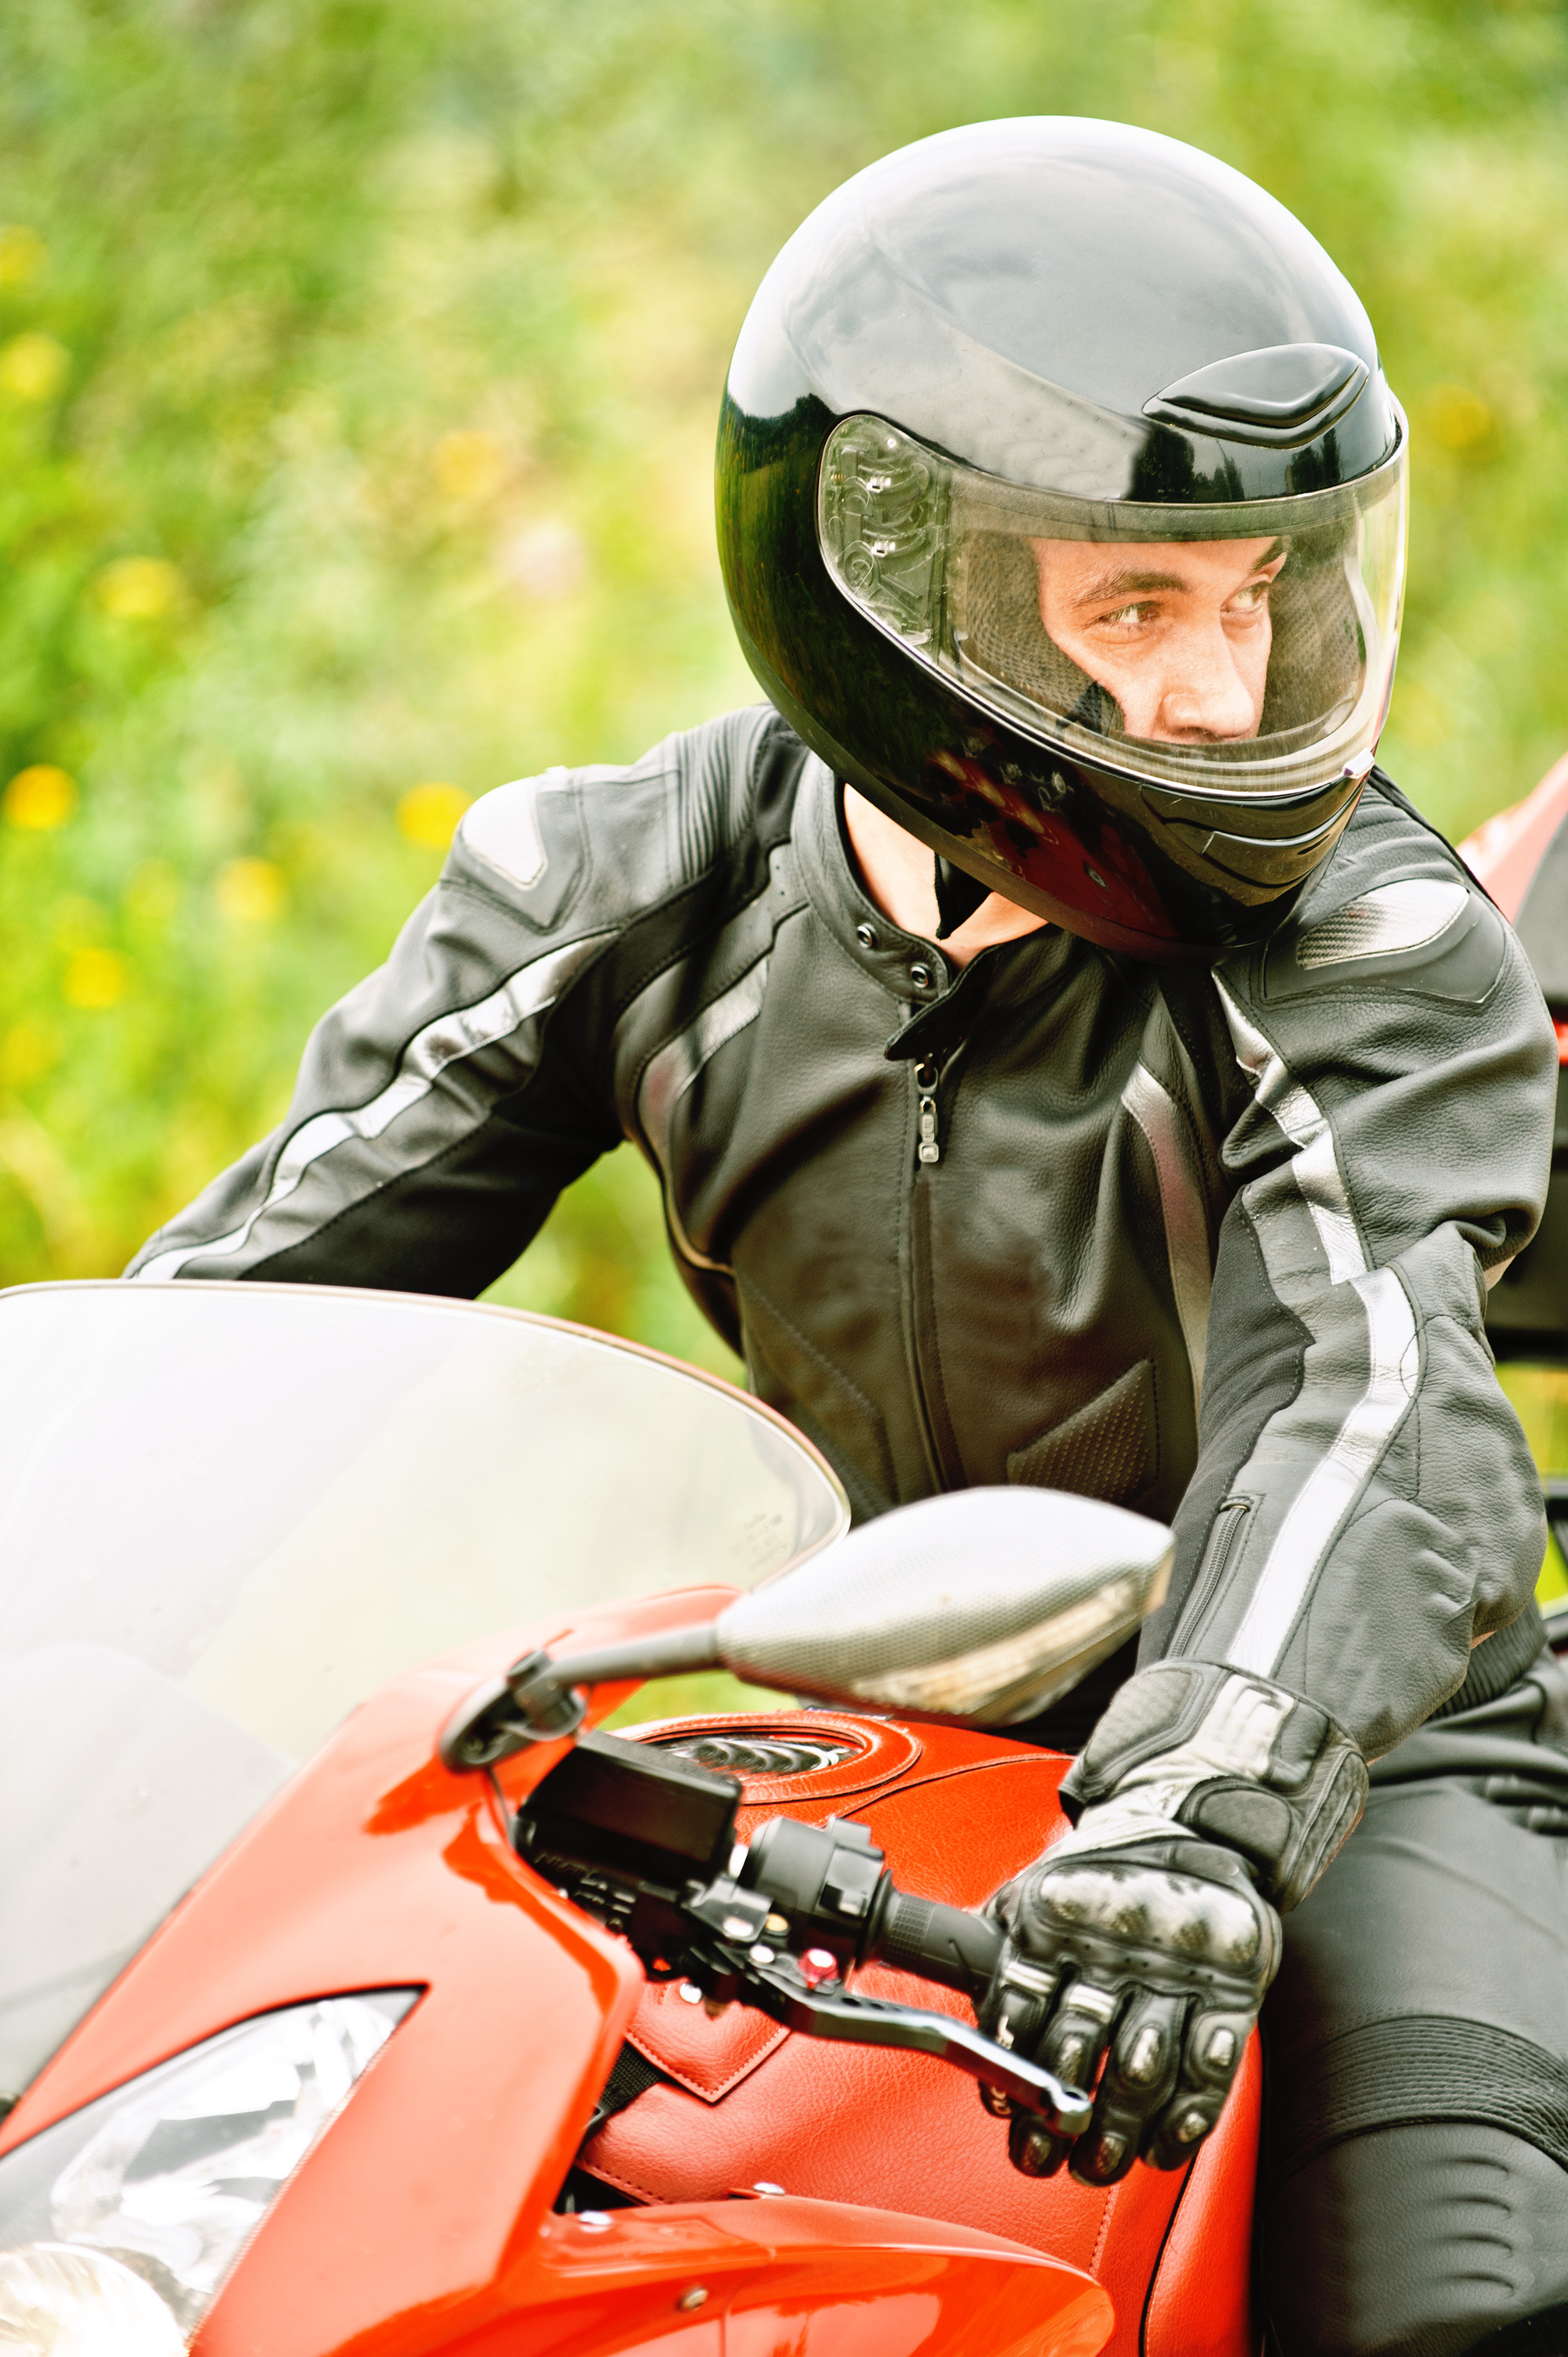 the motorcycle helmet law Impact helmet use has on motorcycle insurance rates motorcycle helmet laws by state in states where a motorcycle helmet is required to ride legally, the law often states the helmet needs to be dot-approved, meaning it complies with the department of transportation's standards.